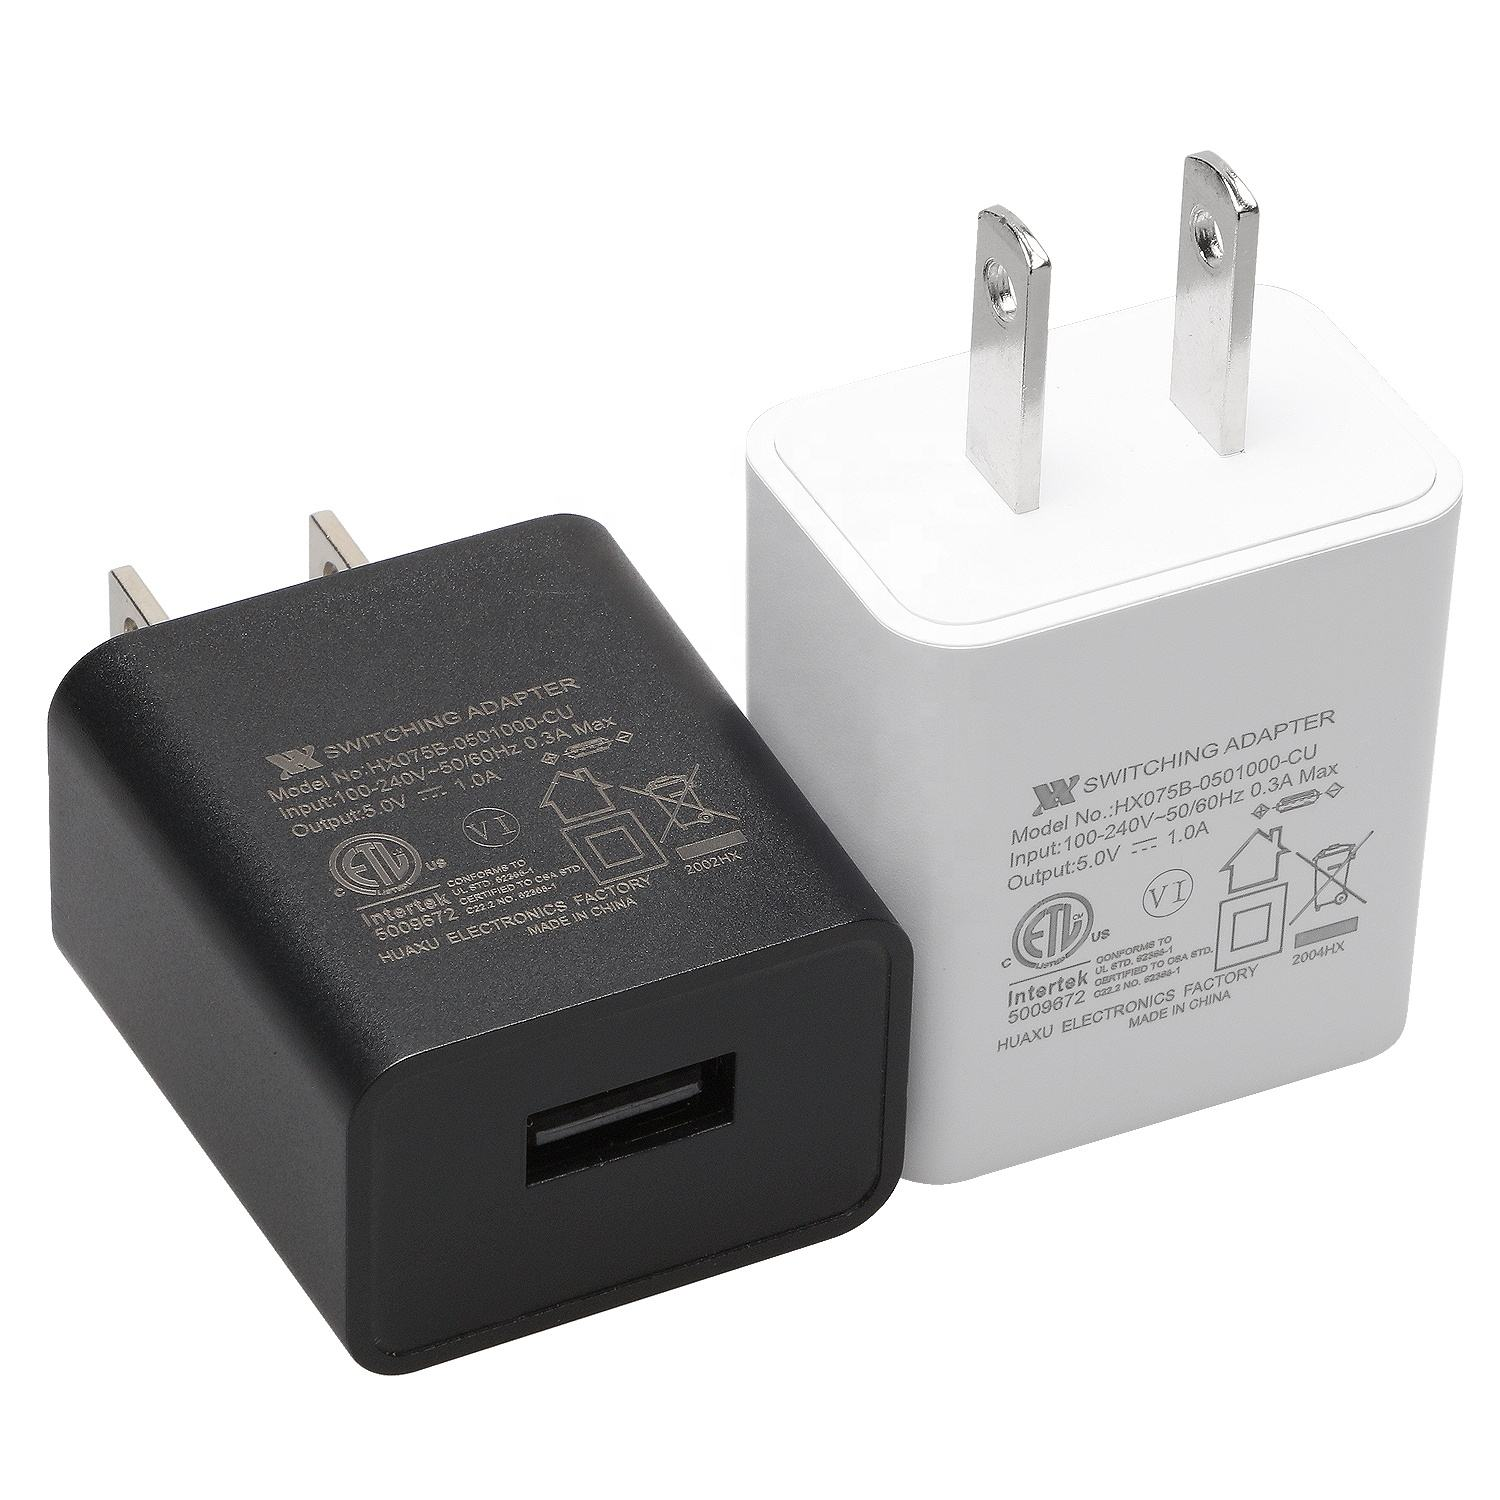 5 V 1A 1.2A 1.5A USB Wall Charger ADAPTER US/EU/UK ปลั๊กพอร์ต Switching Power supply FCC CE ROHS ETL BS GS